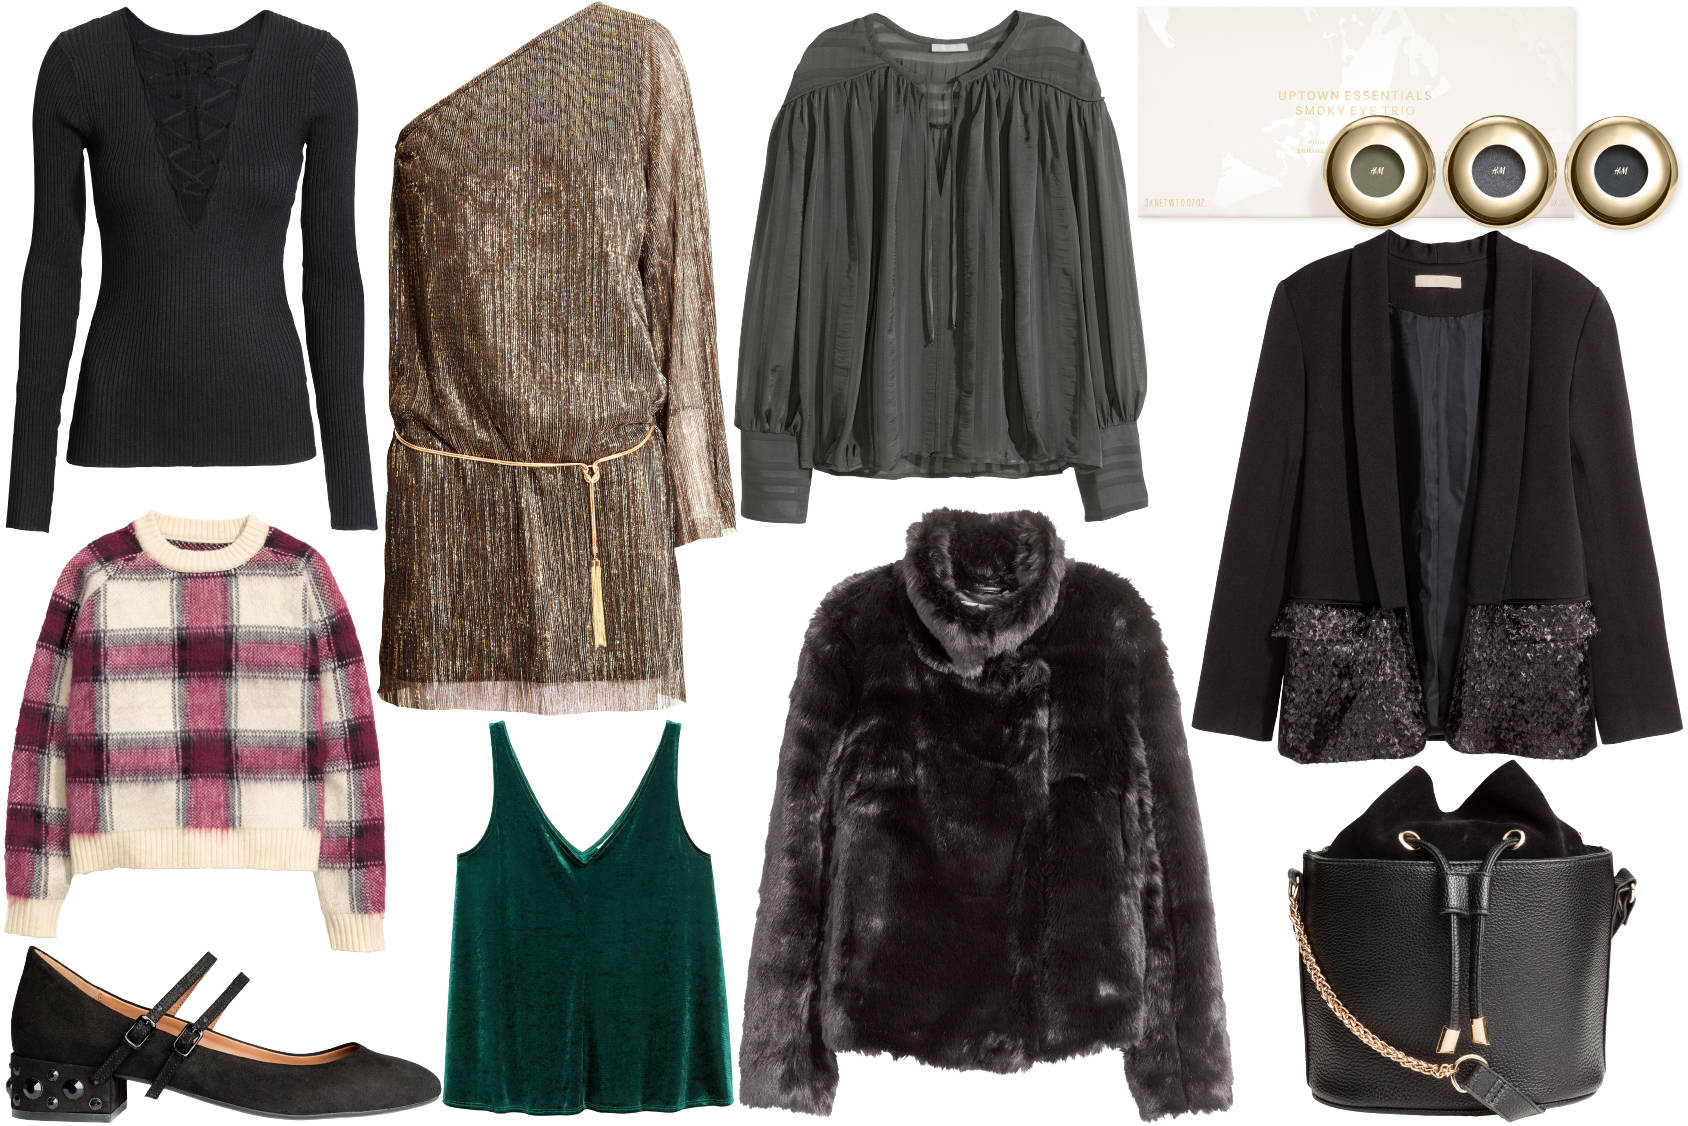 THIS WEEK'S FASHION FINDS, WEEK 49